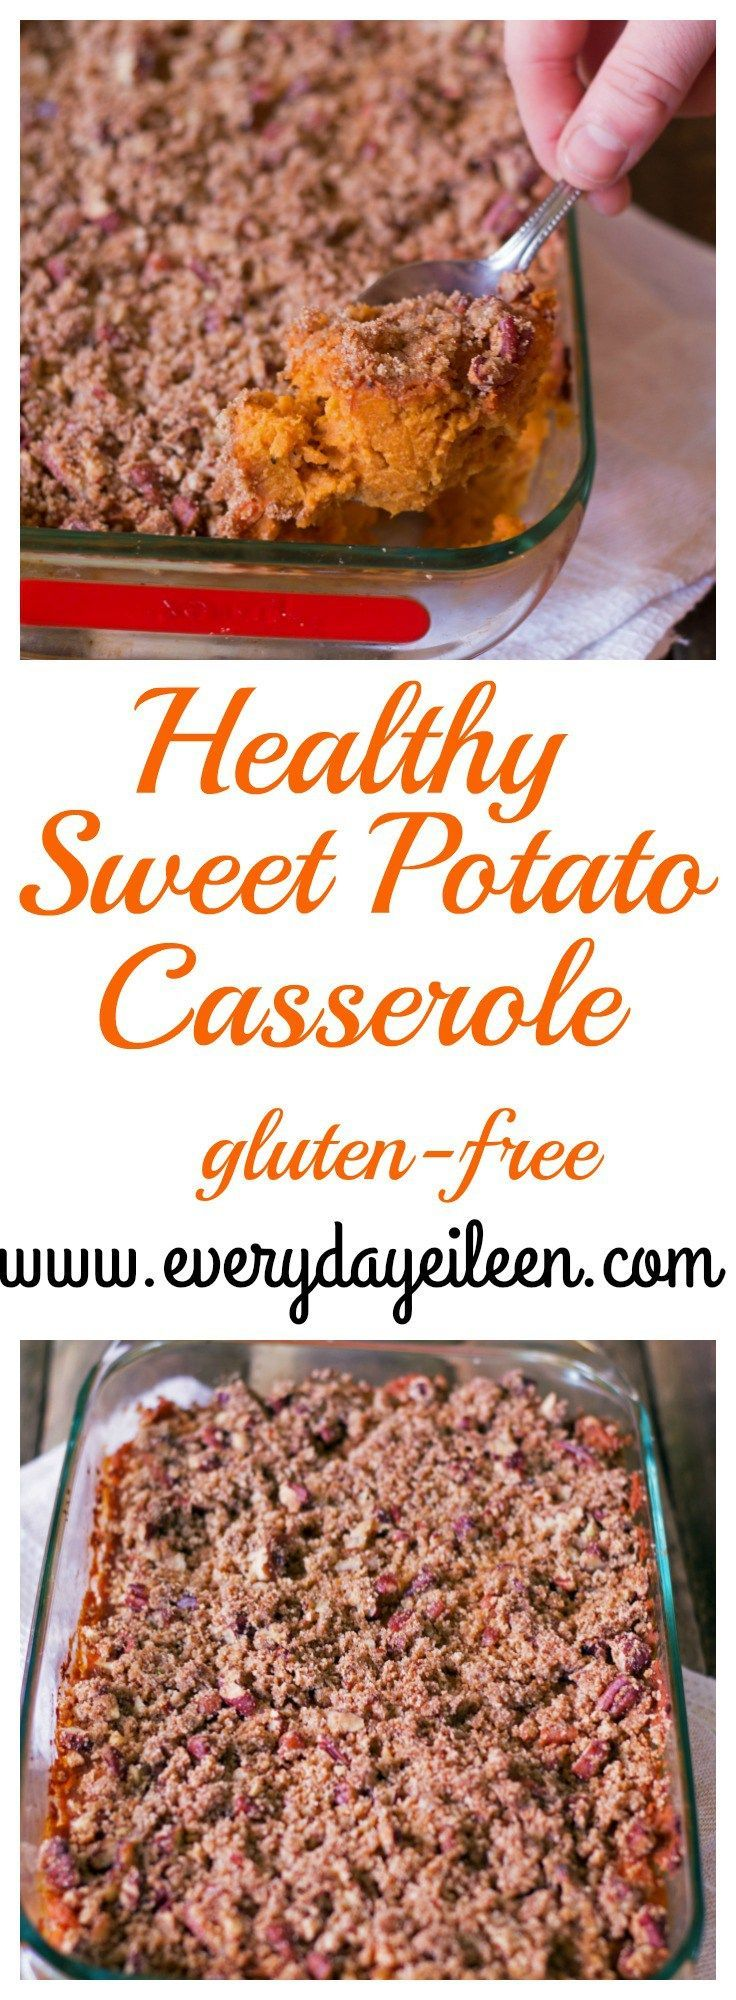 Healthy sweet-potato-casserole is an easy dish to prepare. Blends sweet and savory flavors that make a yummy side for any meal. Perfect for Thanksgiving and any Holiday table! Gluten-free and low-calorie